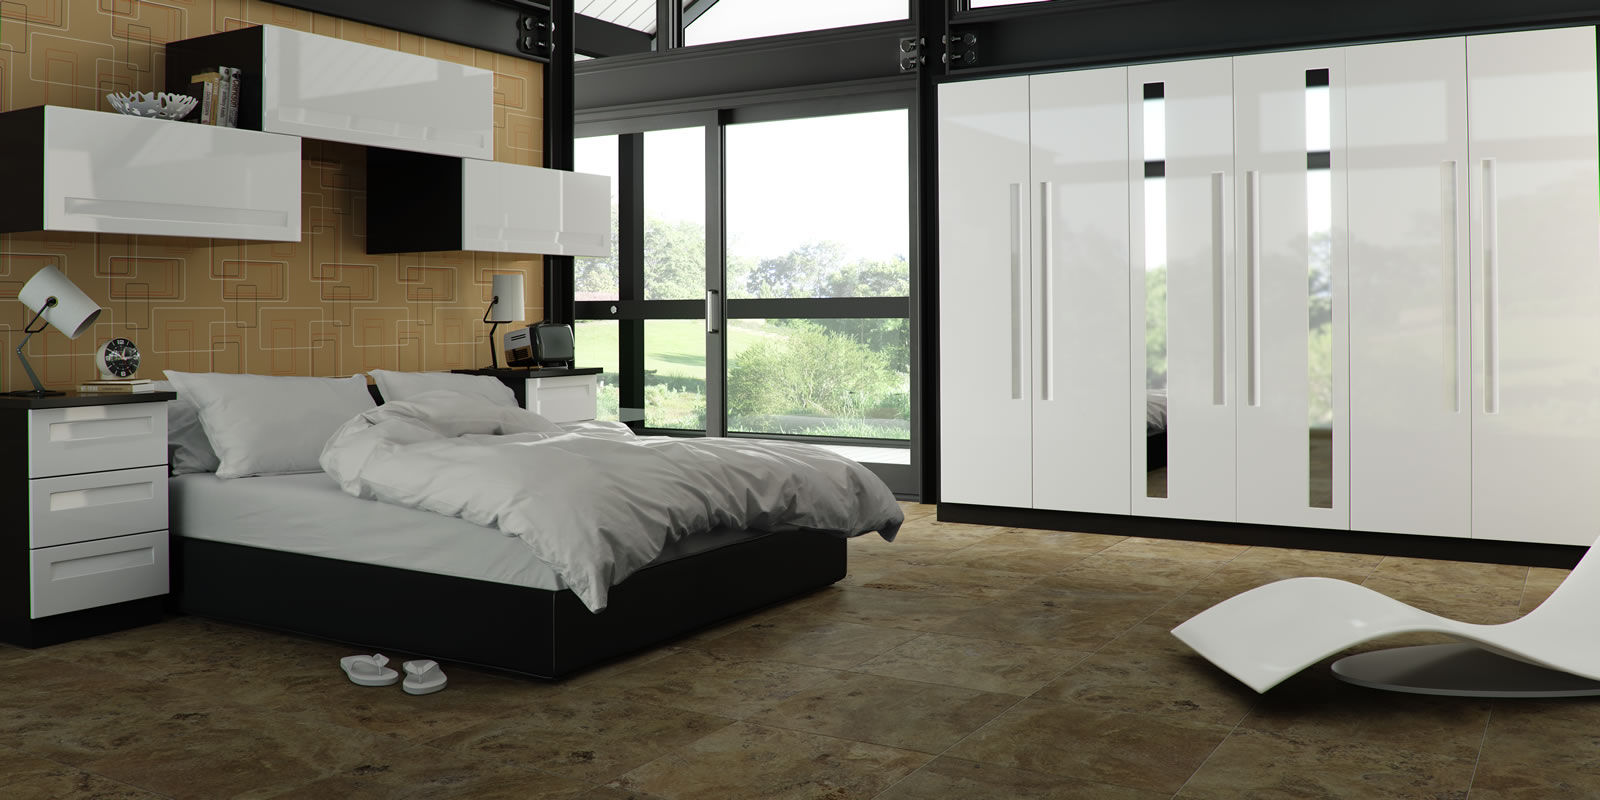 Bedrooms Galworx Custom Fitted Kitchens Furniture And Storage Solutions